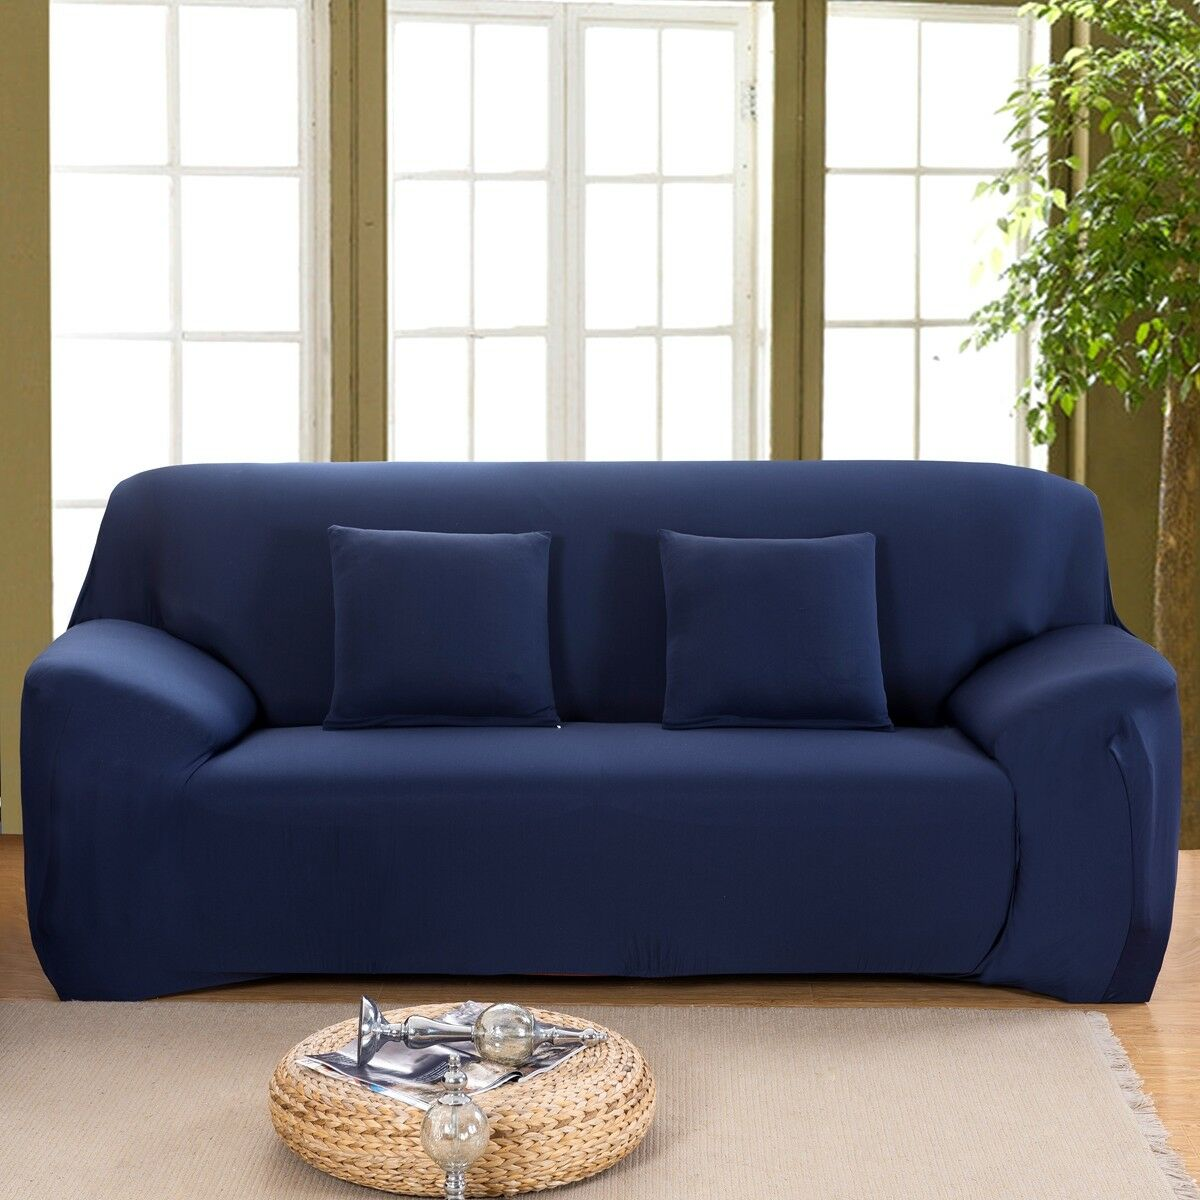 EASY-Stretch-Couch-Sofa-Lounge-Covers-Recliner-1-2-3-Seater-Dining-Chair-Cover thumbnail 69